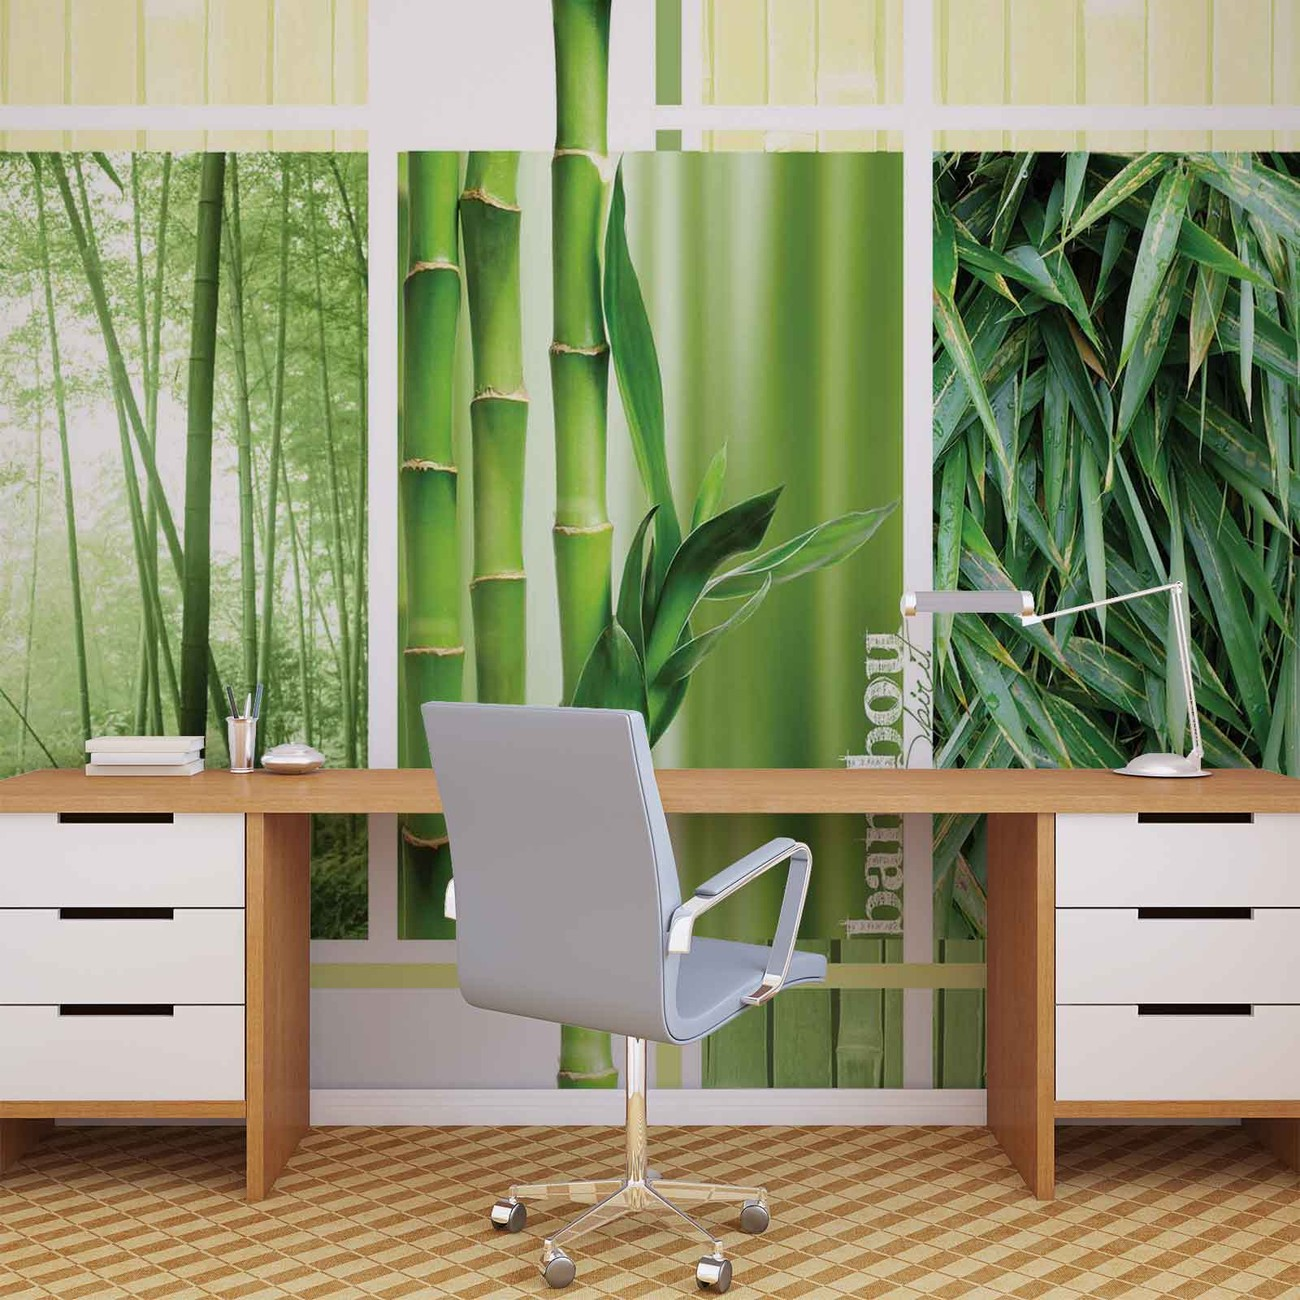 Bamboo forest nature wall paper mural buy at europosters for Bamboo forest mural